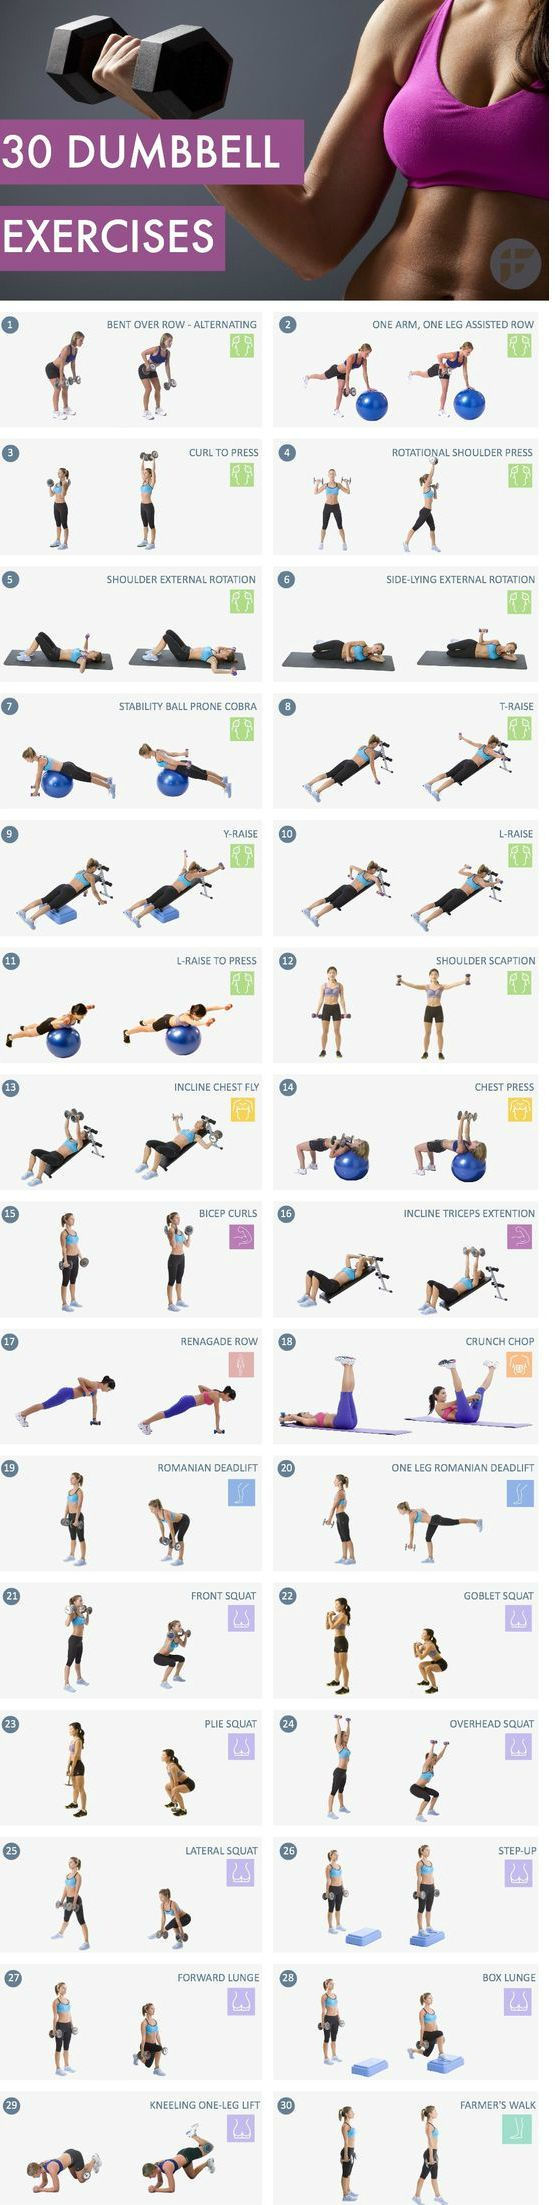 30 Must dumbbell exercises for at home workouts. Dumbbells are versatile free weight equipments that offer benefits other gym equipments can't. They can be used to tone up your full-body, burn calories and improve balance, stabilization and range of motio